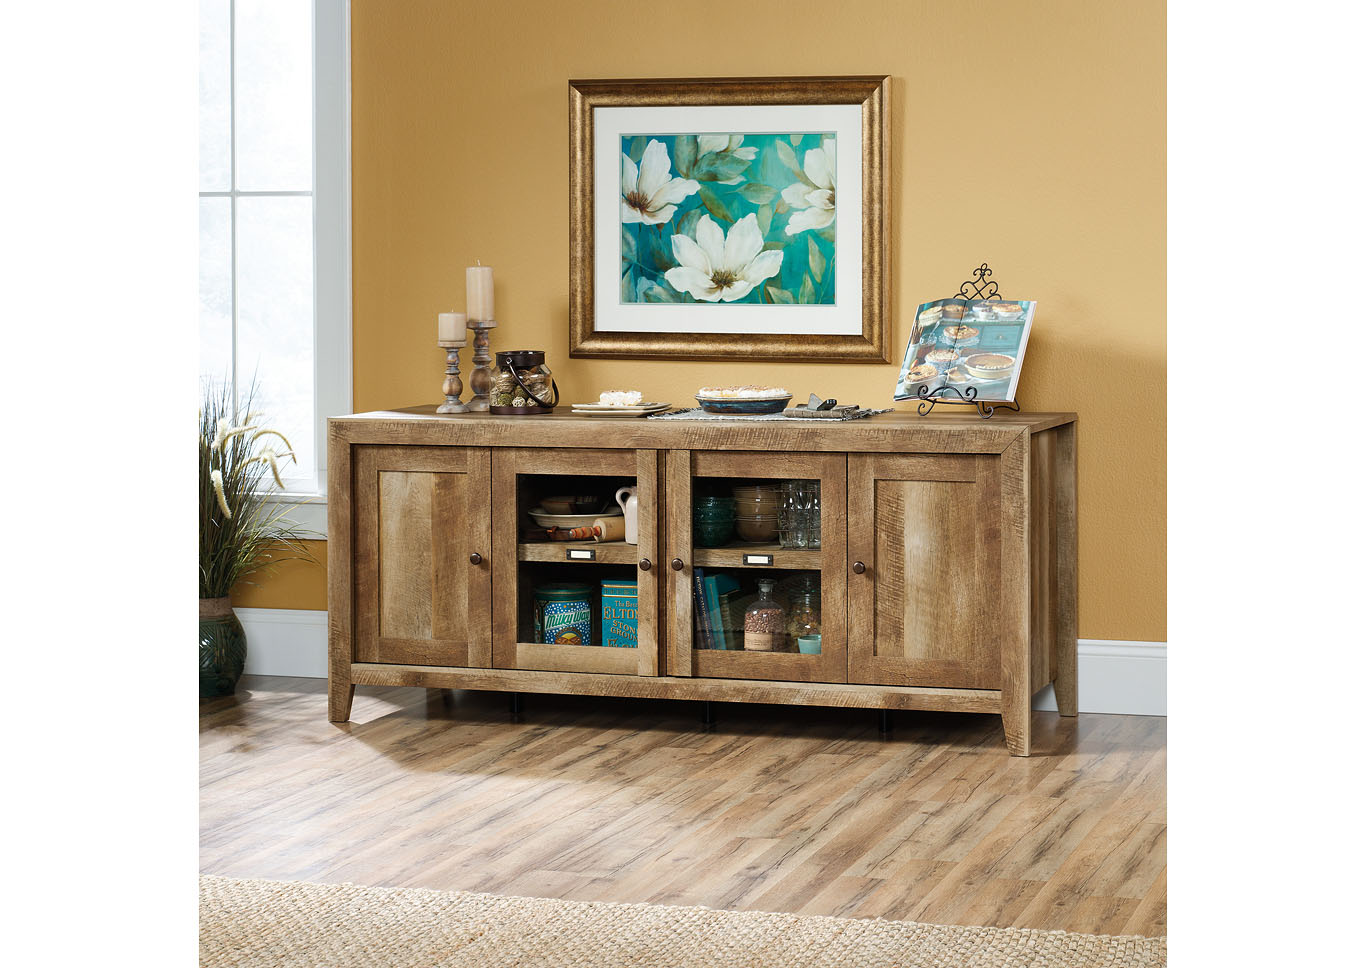 Dakota Pass Craftsman Oak Credenza,Sauder